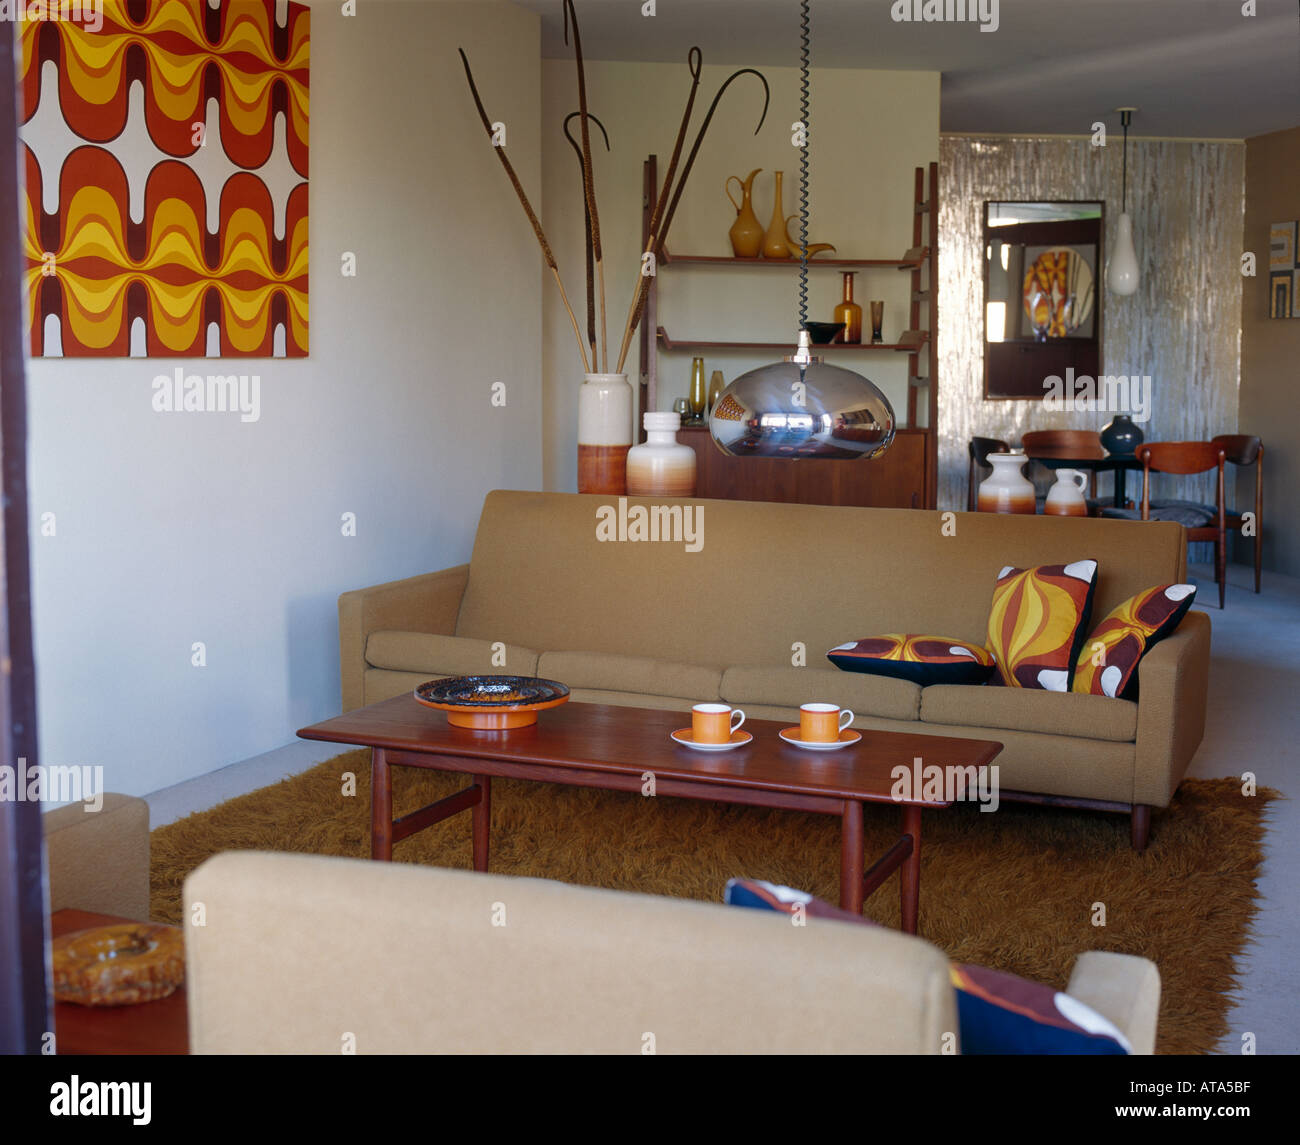 Retro style house in Elizabeth Bay. Living room with coffee table and four seater sofa. - Stock Image